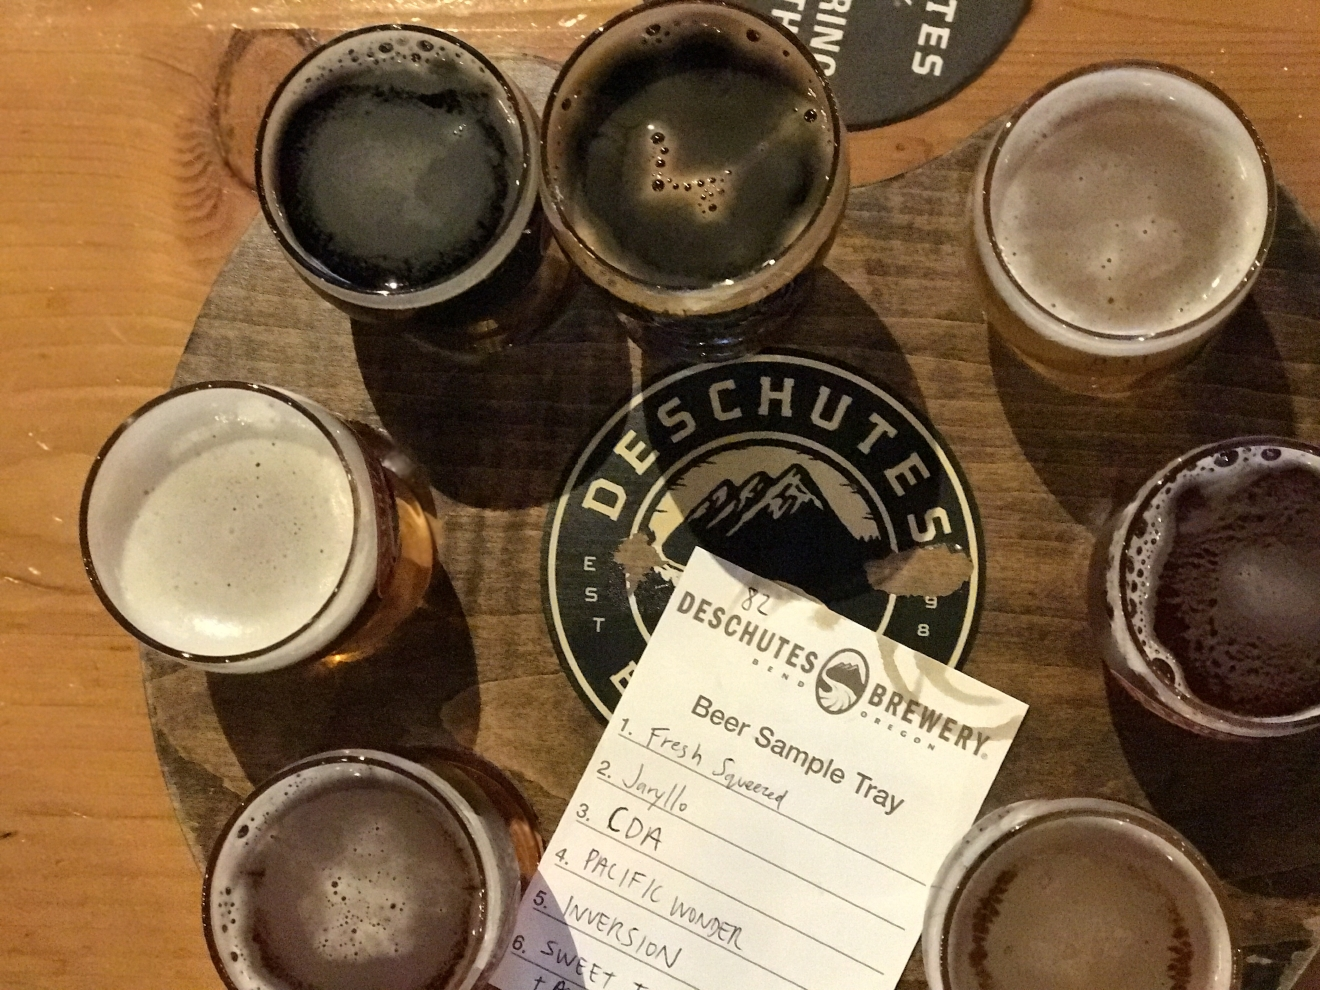 Beer, beer and more beer at Deschutes.                                           (Image: Kate Neidigh)